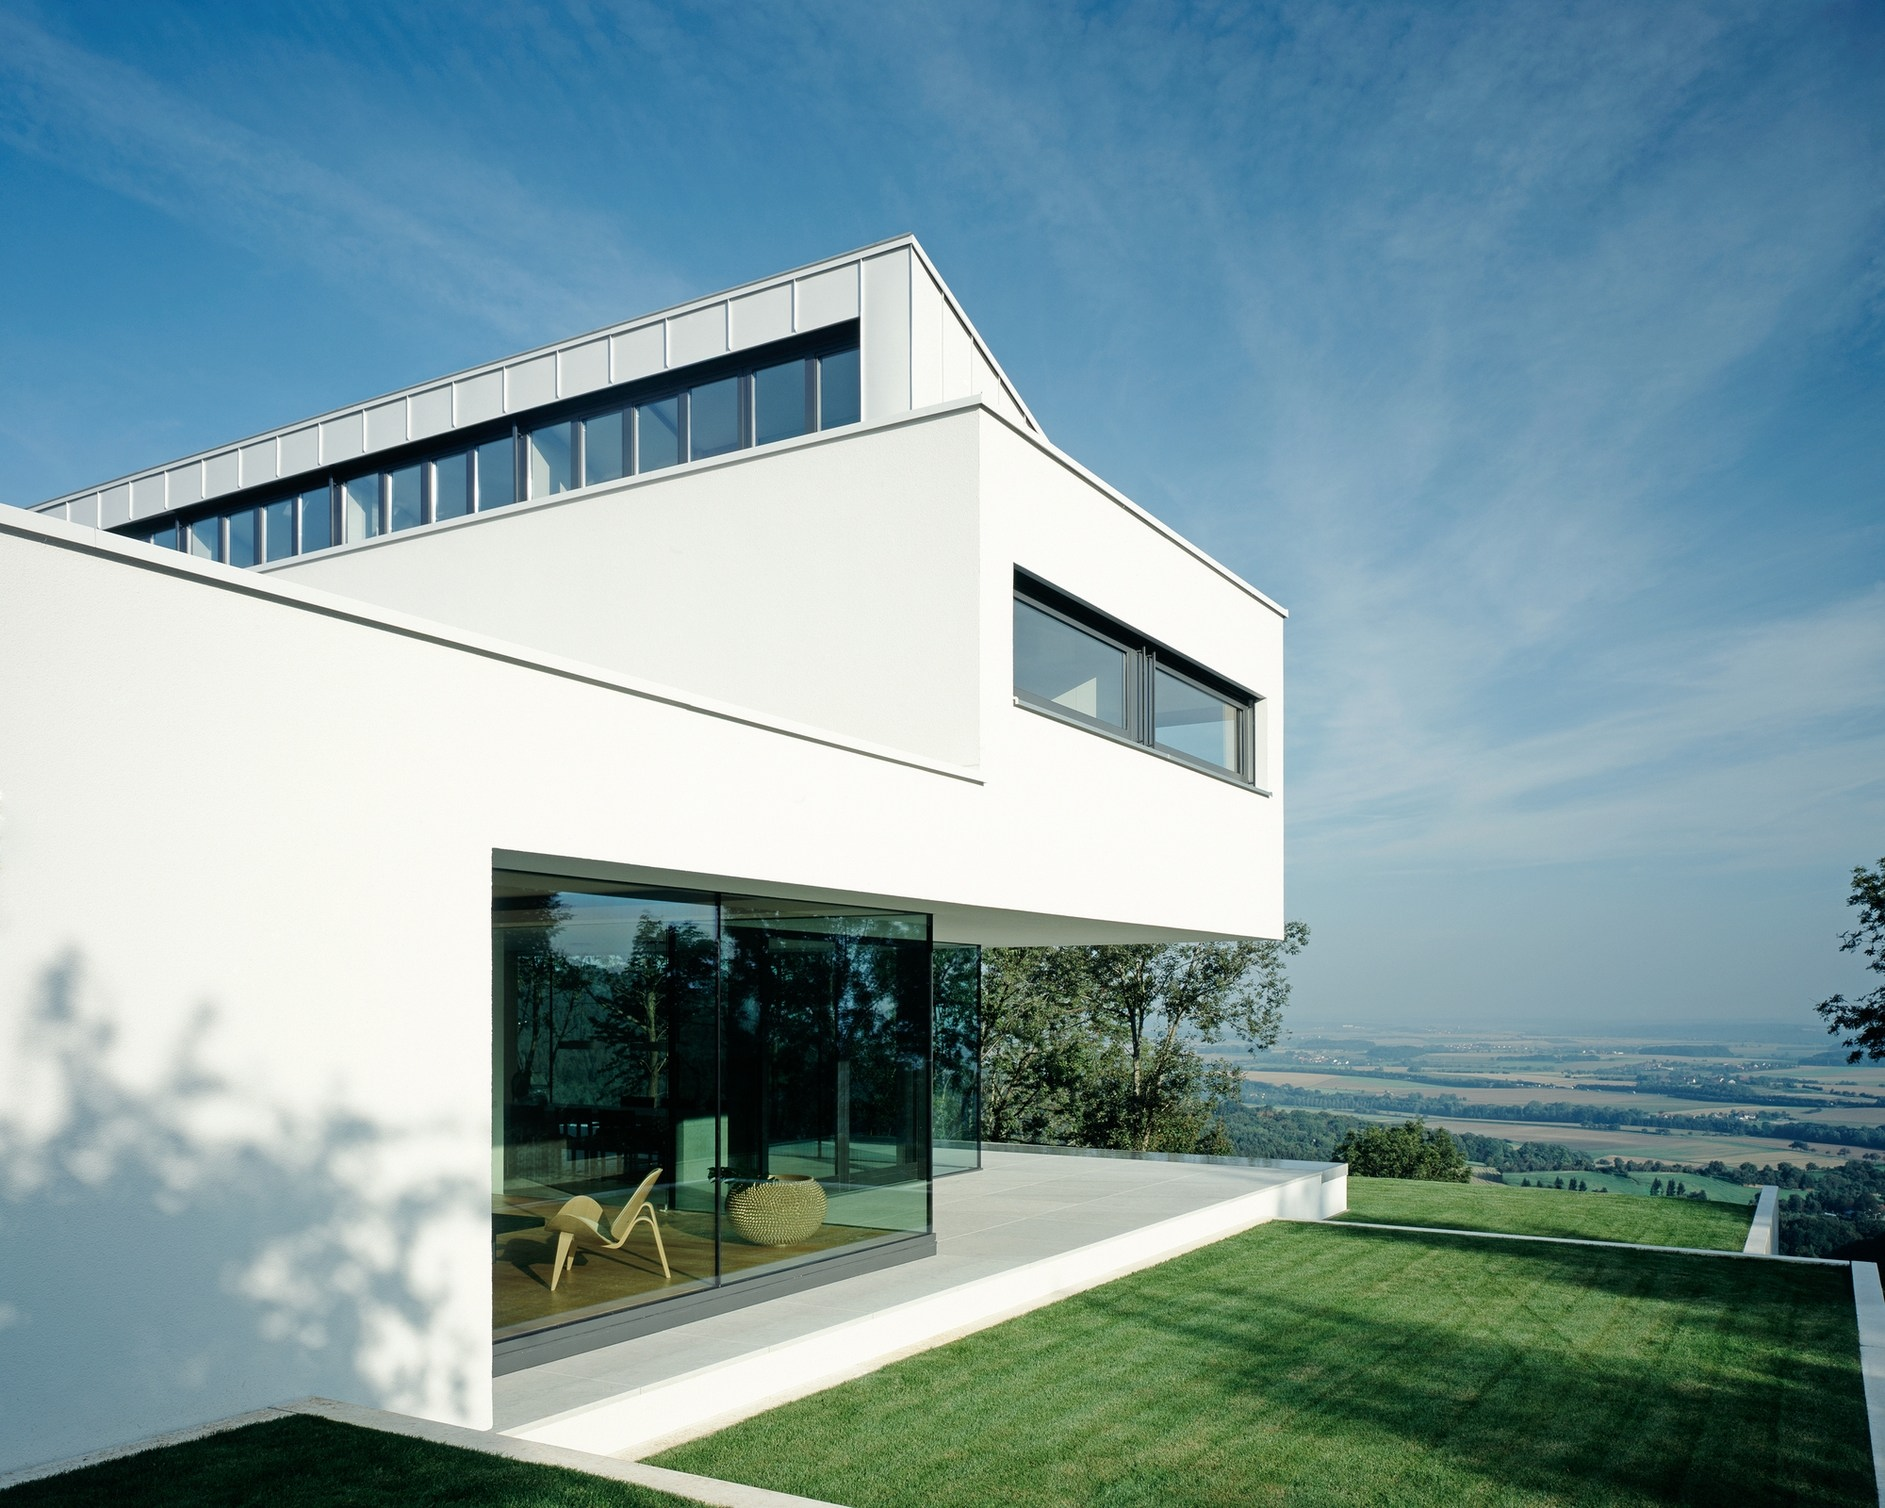 House p by philipp architekten karmatrendz - Architekten deutschland ...